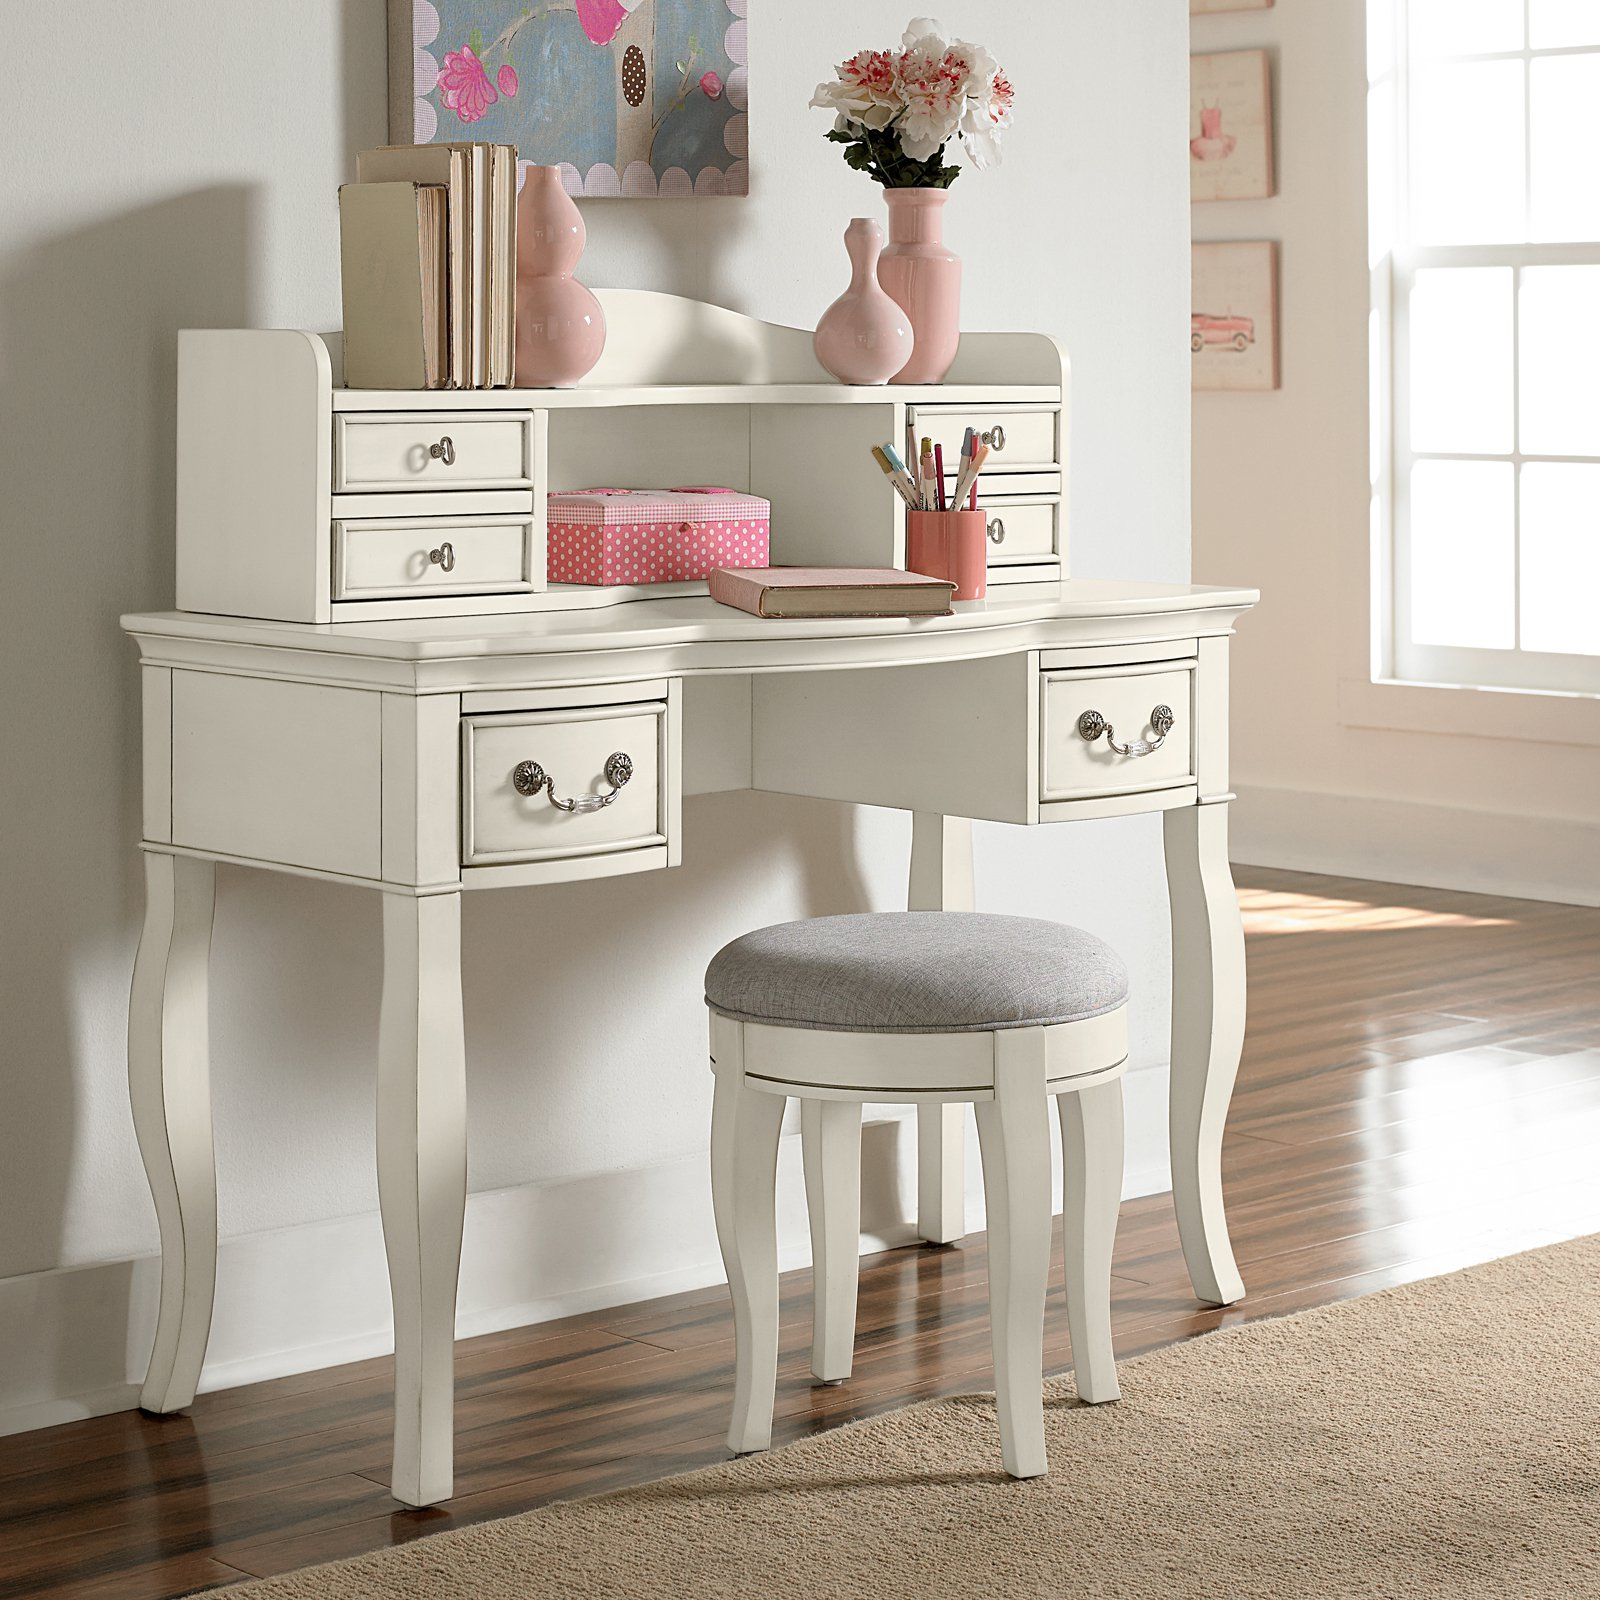 NE Kids Kensington Writing Desk